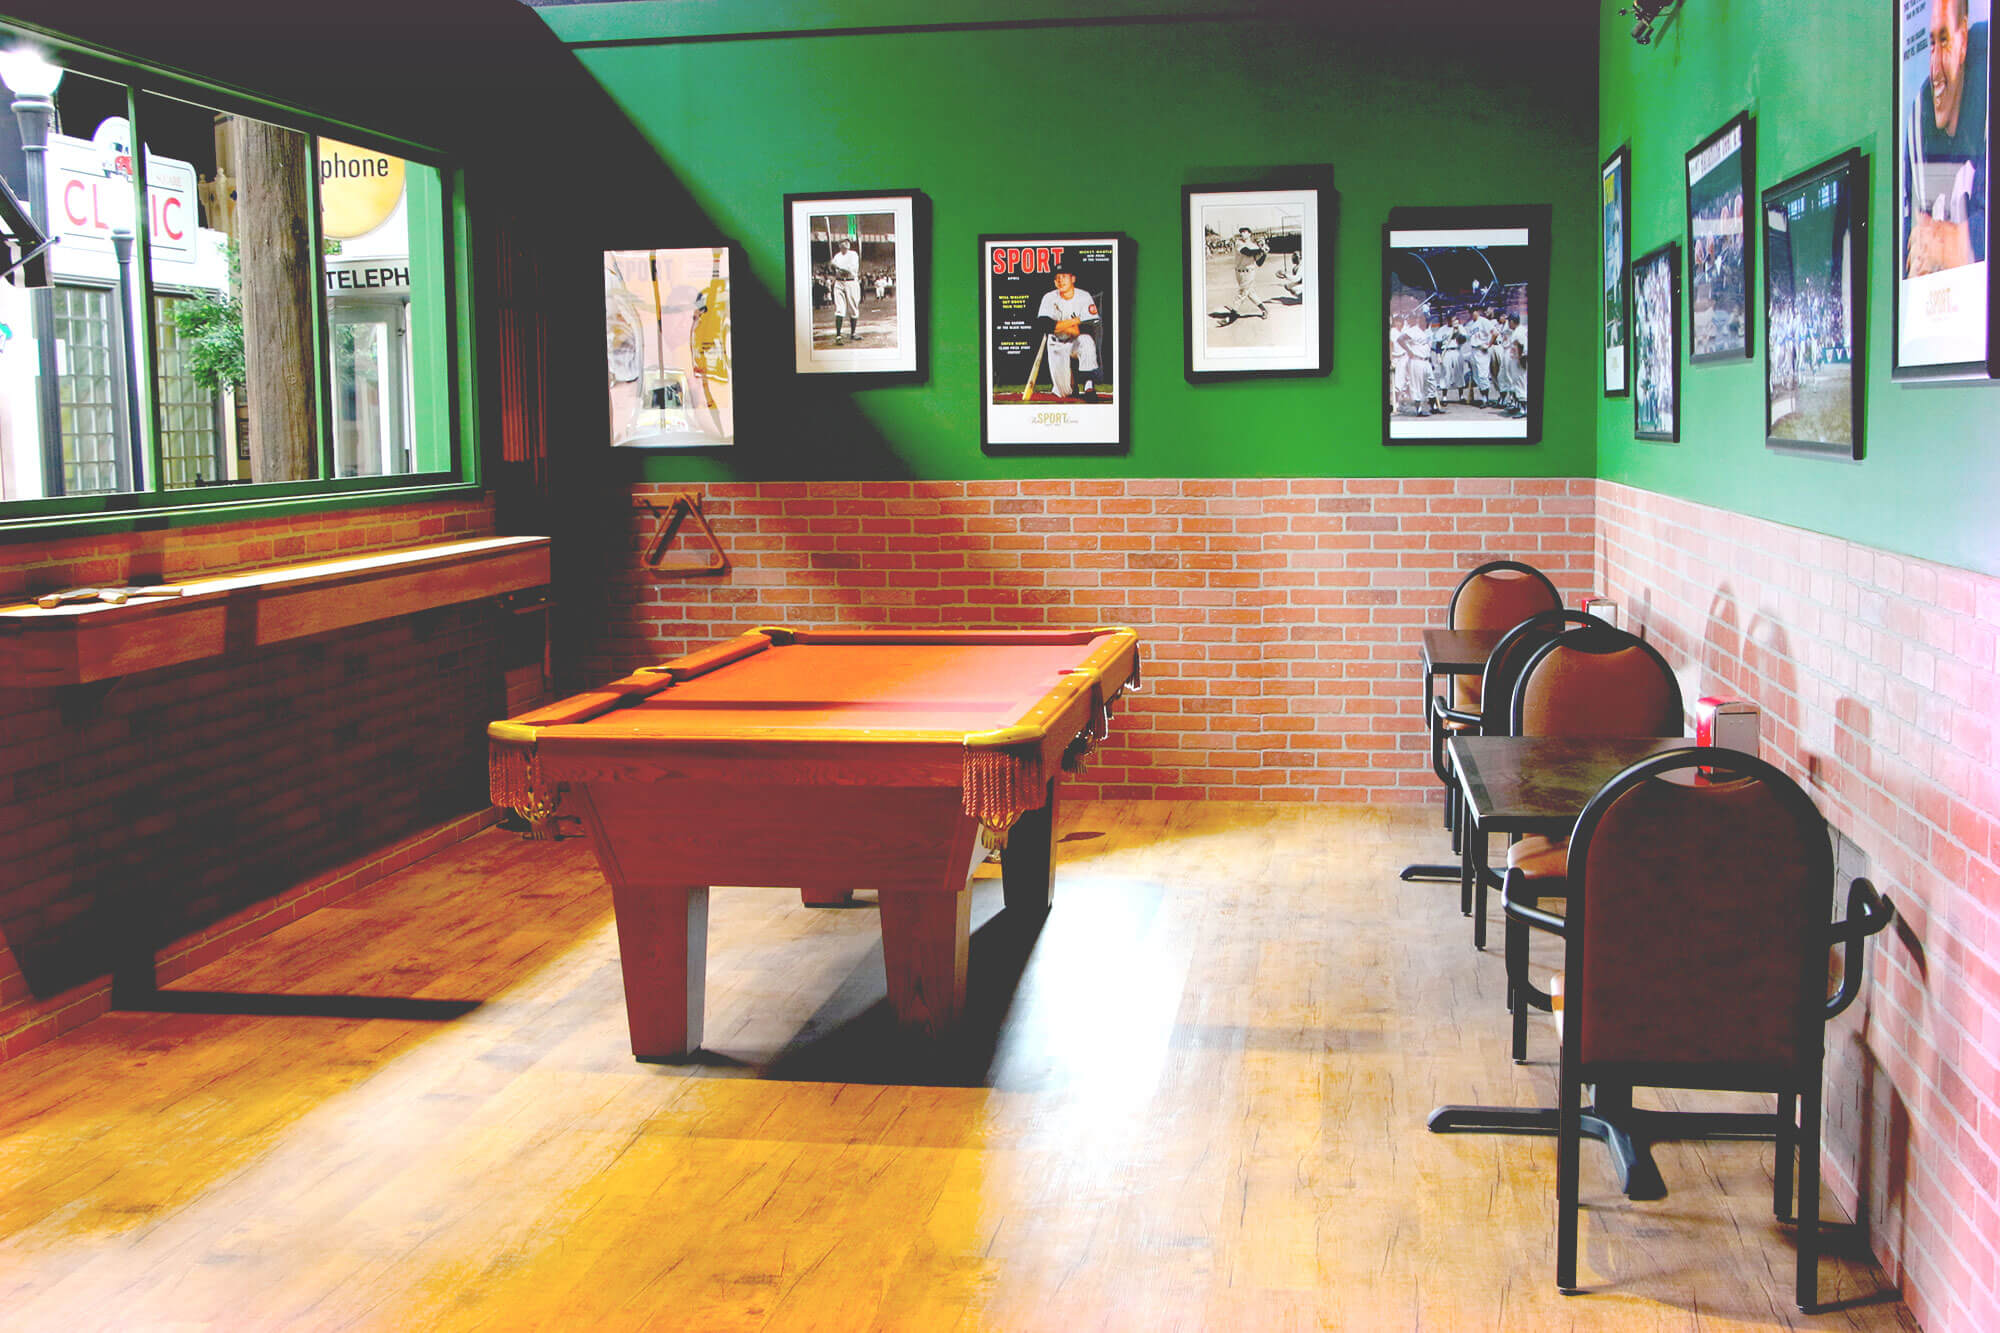 The Pub's Pool Table